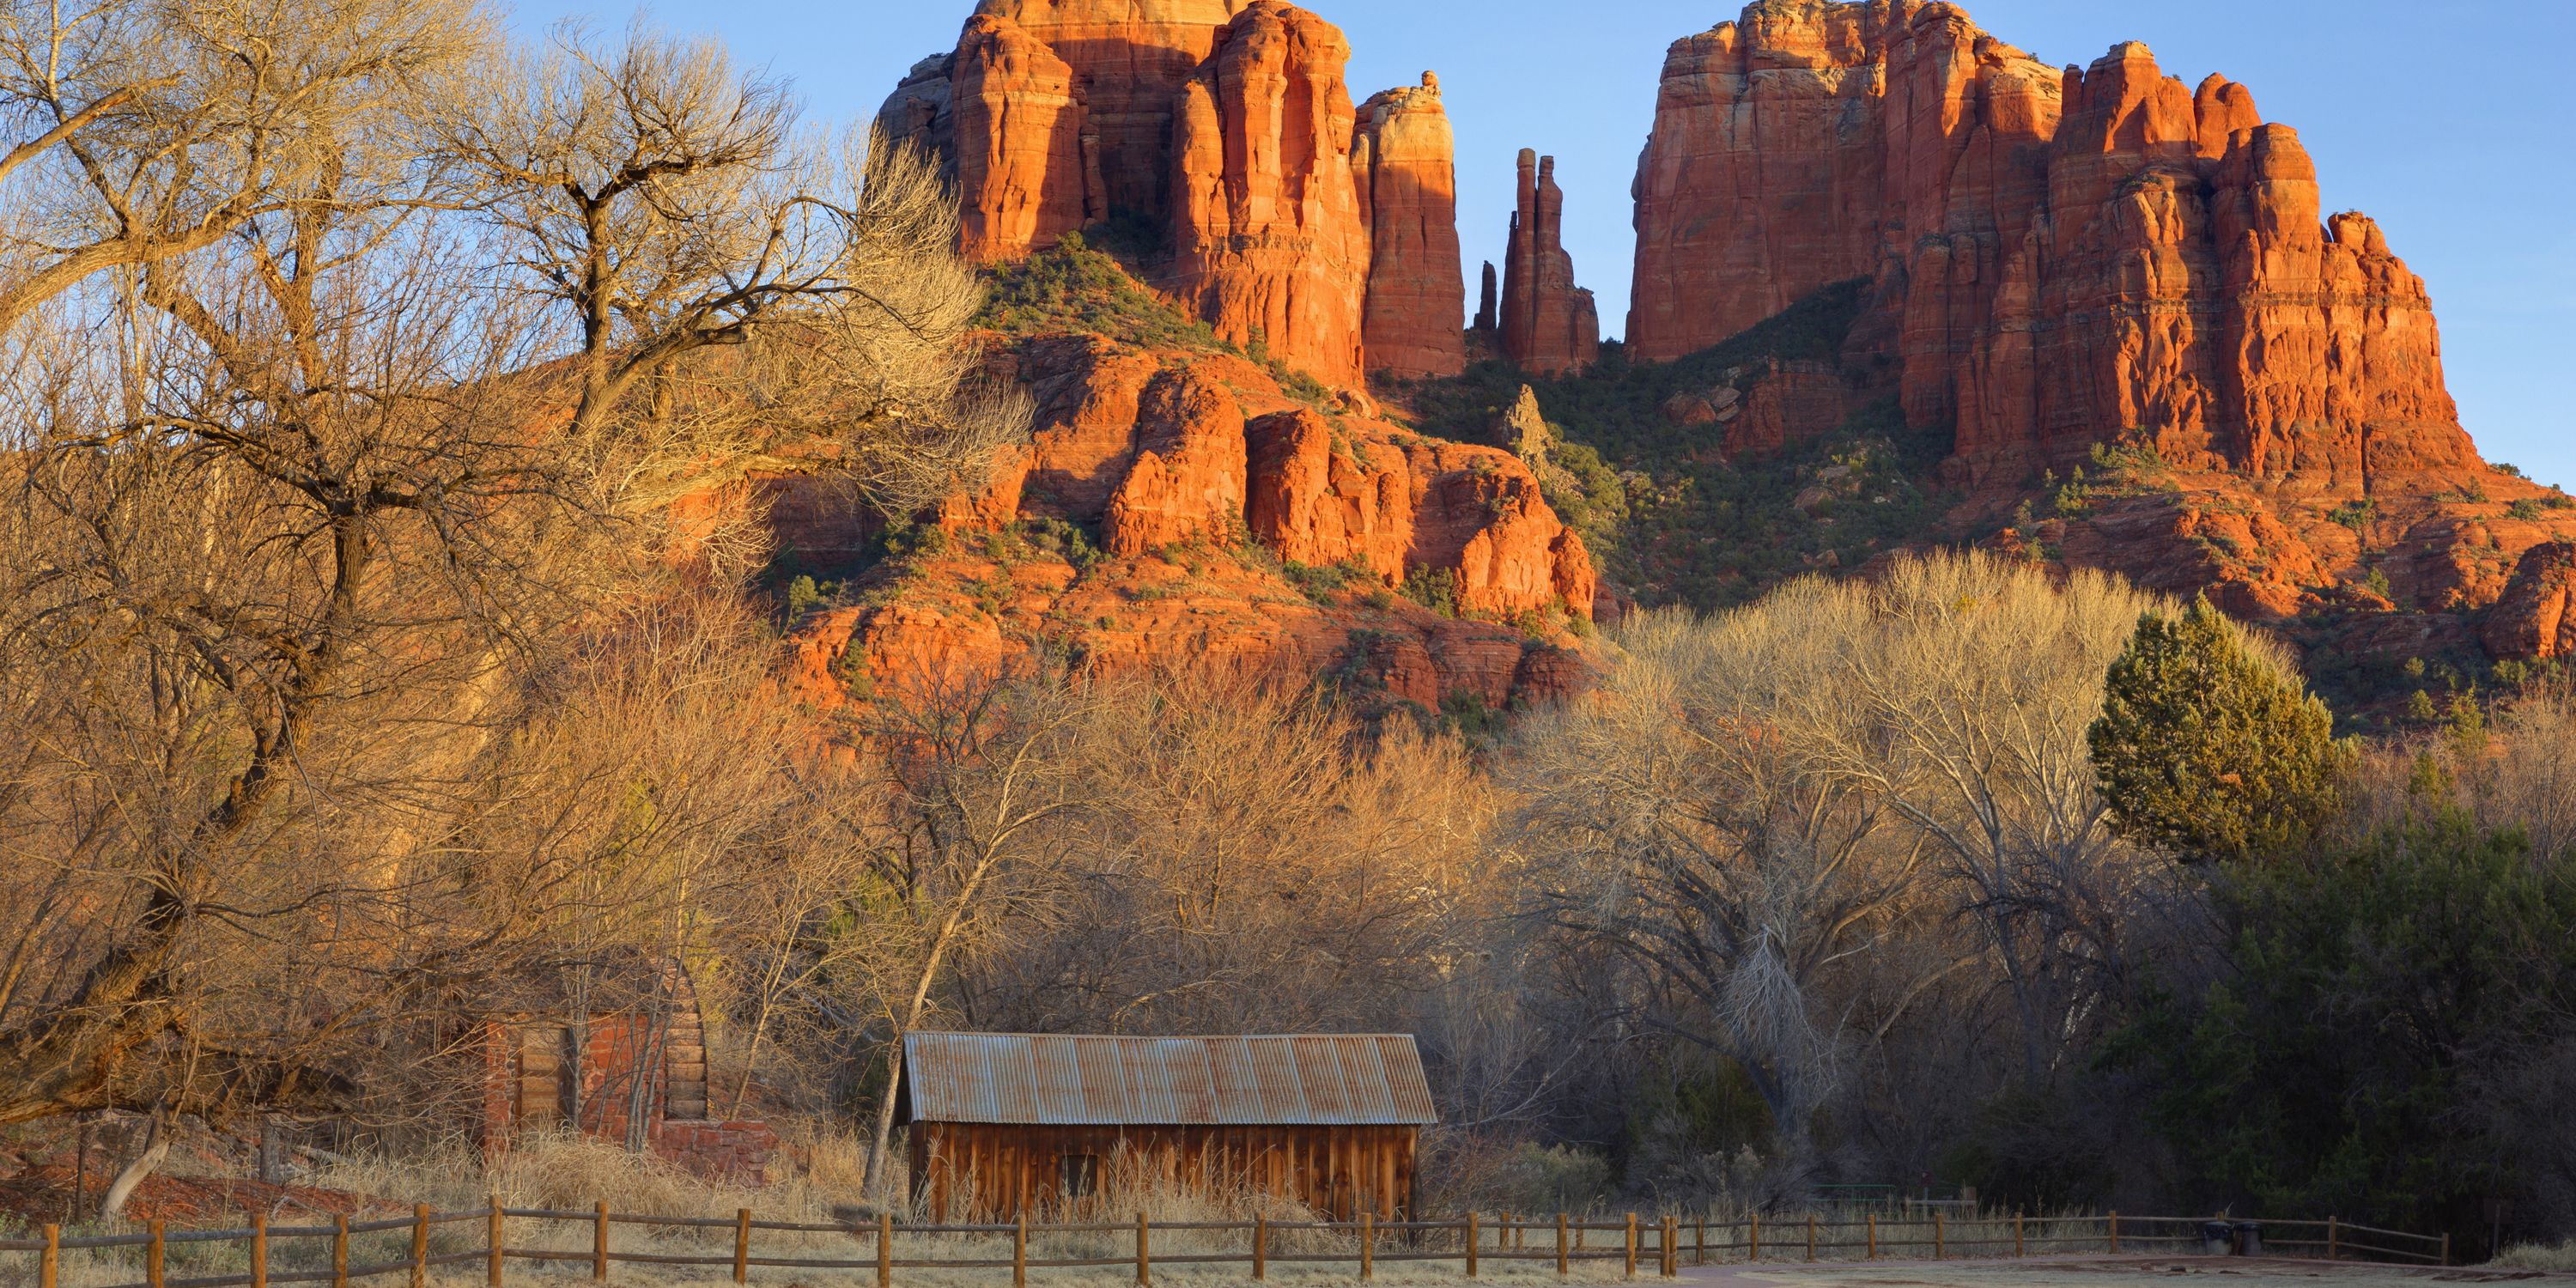 Also known as Route 179, the Red Rock Scenic byway is a little 7.5-mile slice of desert heaven that starts in Sedona, Arizona and runs south, ending at Interstate 17 near Rimrock. You'll pass through the stunning scenery of the Coconino National Forest, with plenty of opportunities to pull over and take in the beauty of the towering, prehistoric Red Rocks. In addition to hiking trails (try West Fork, touted as the most scenic hike in Sedona) you can fill your adventure quota on a